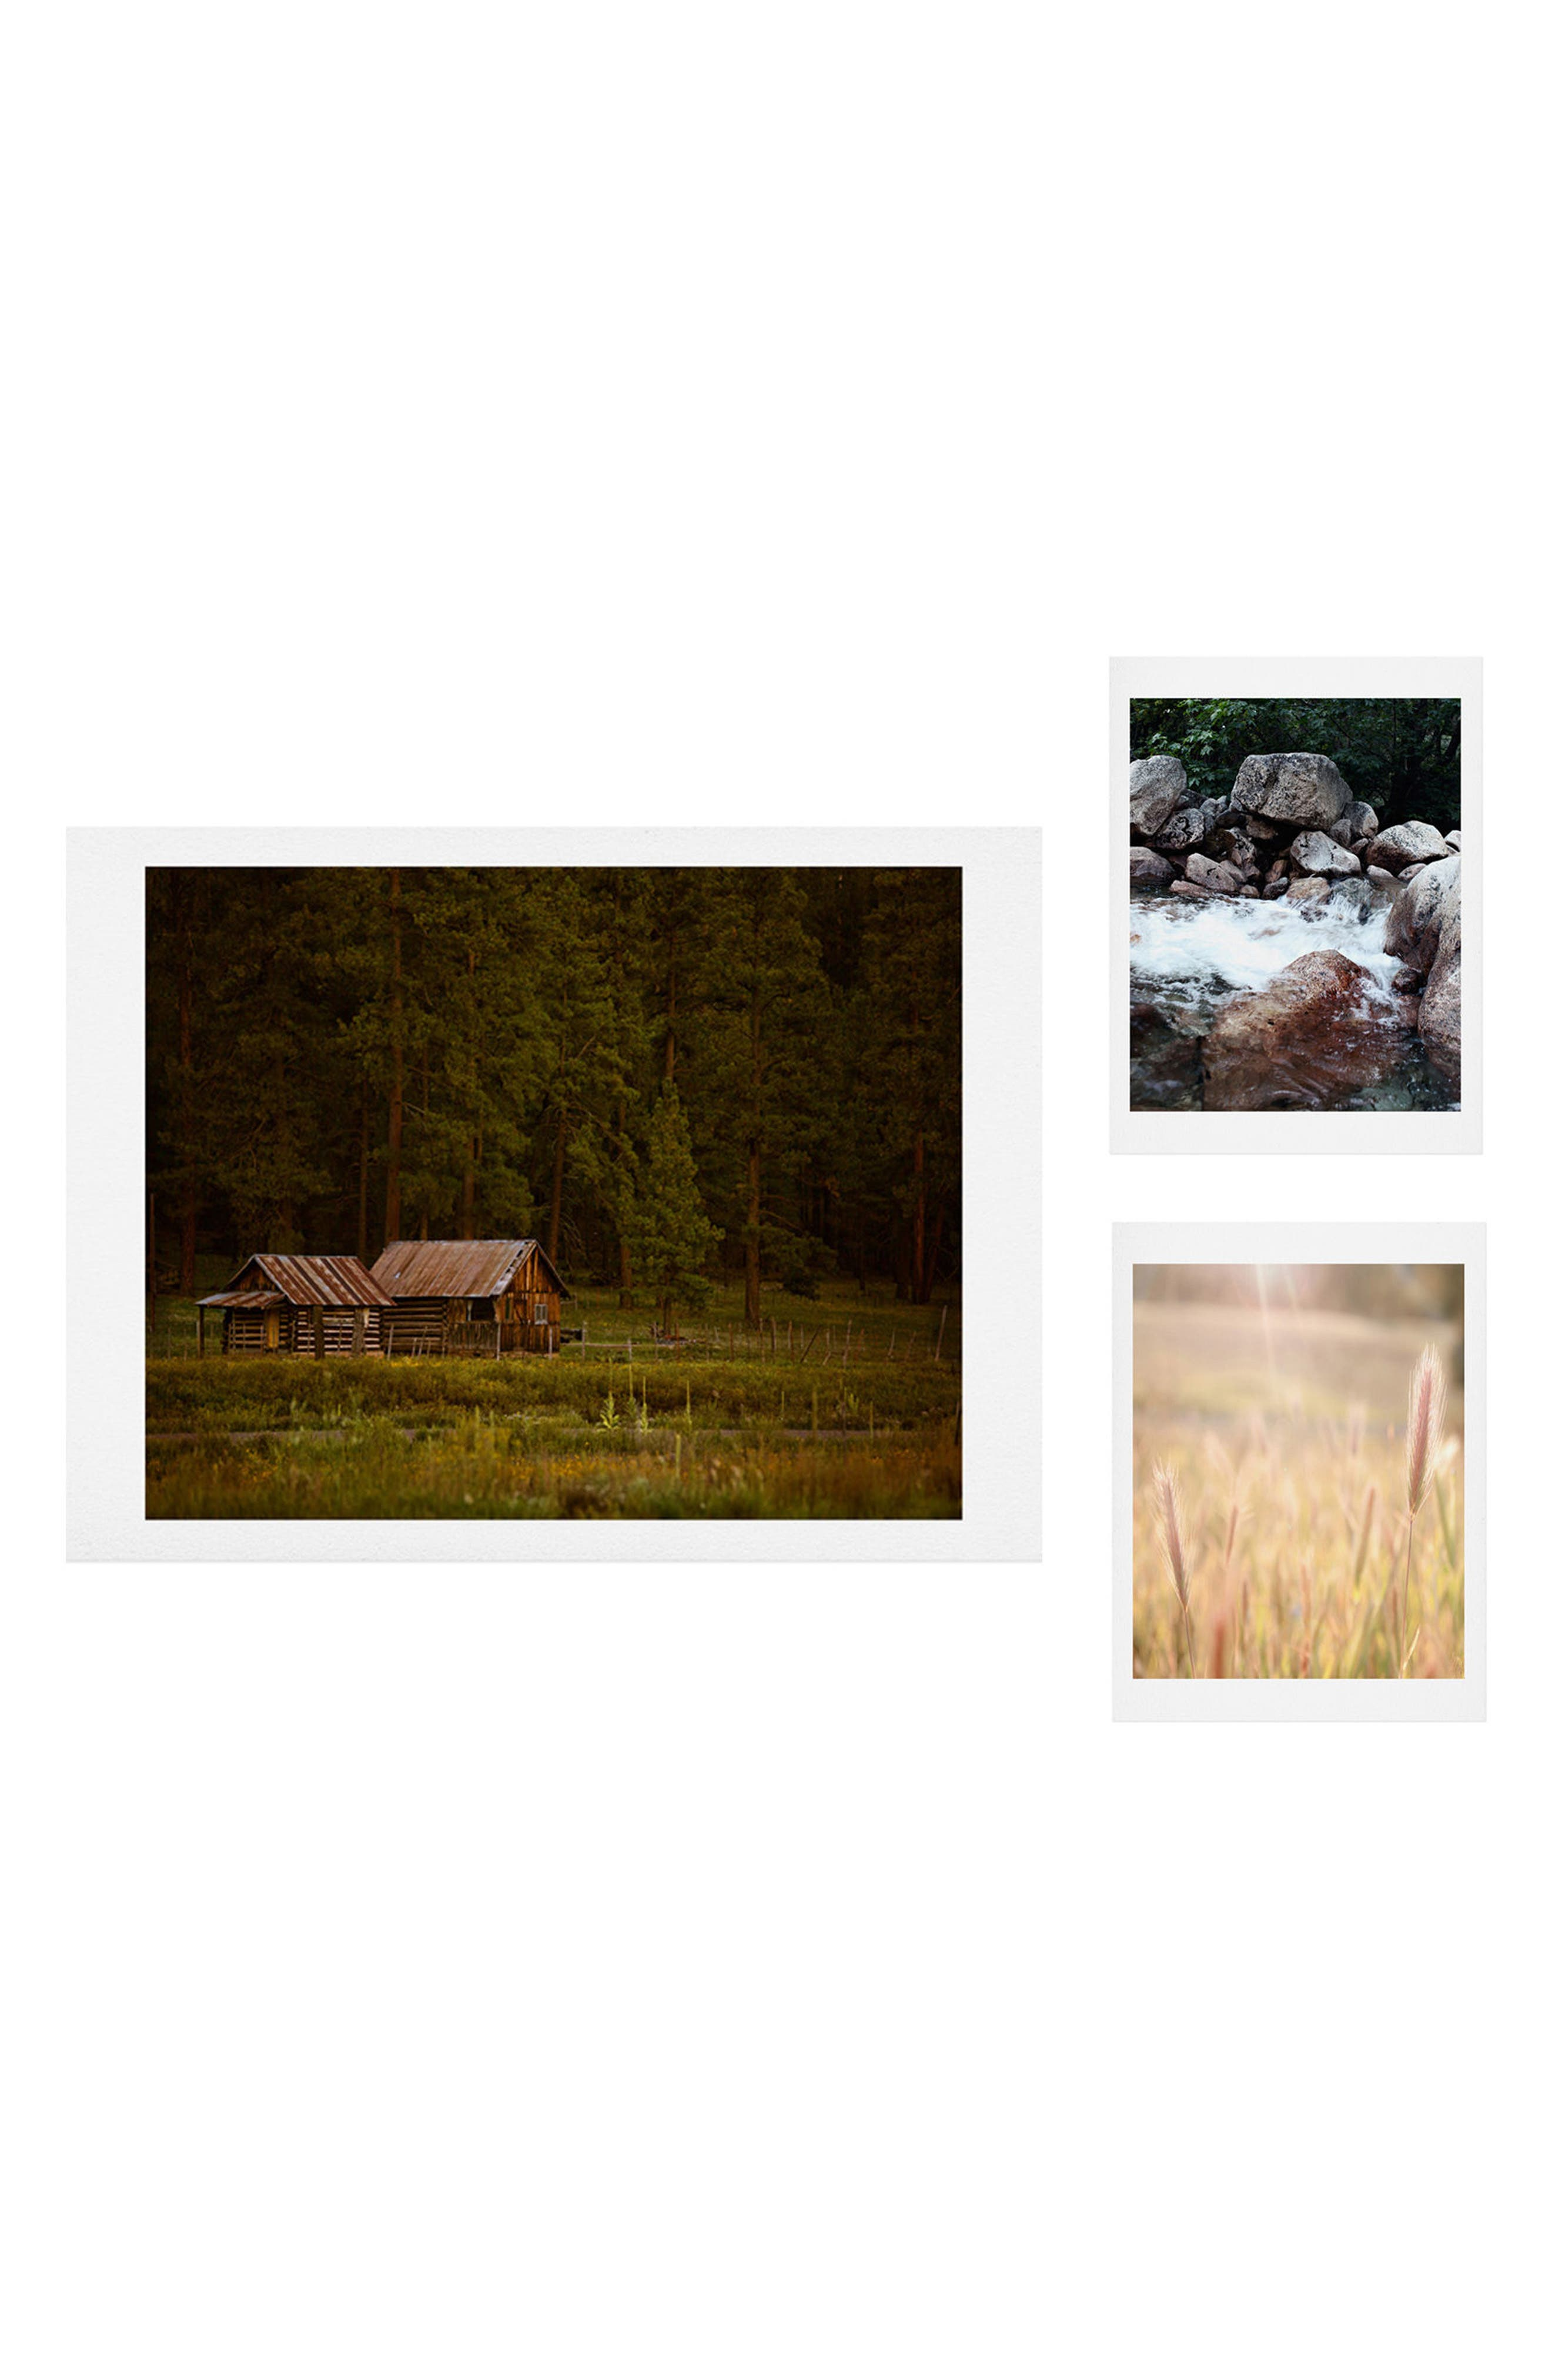 Waves Peaceful Ranch Gallery Wall Art Print Set,                             Main thumbnail 1, color,                             Brown/ Green